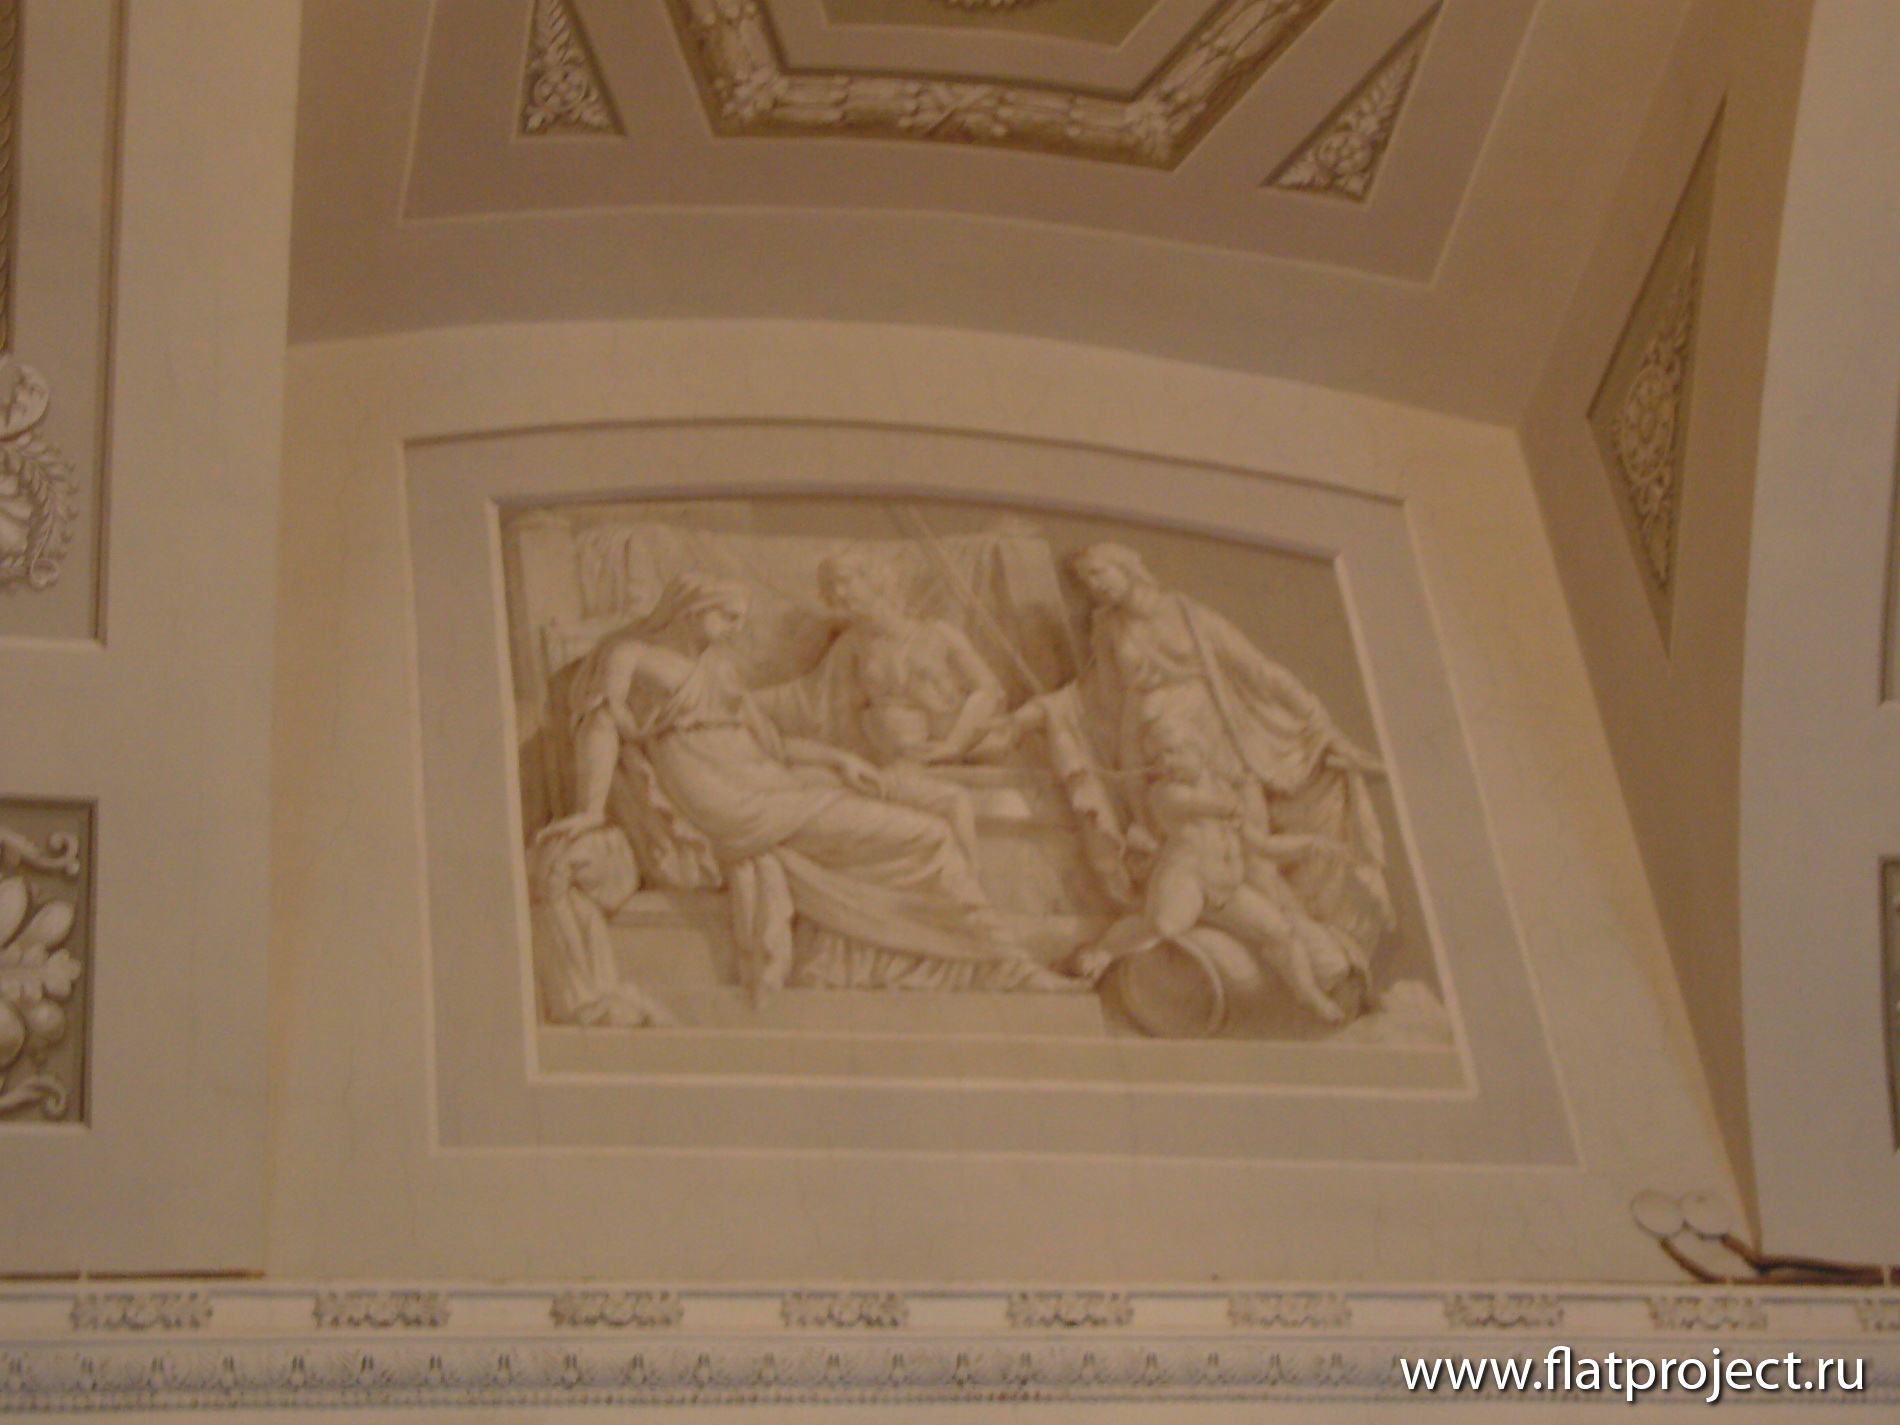 The State Russian museum interiors – photo 135